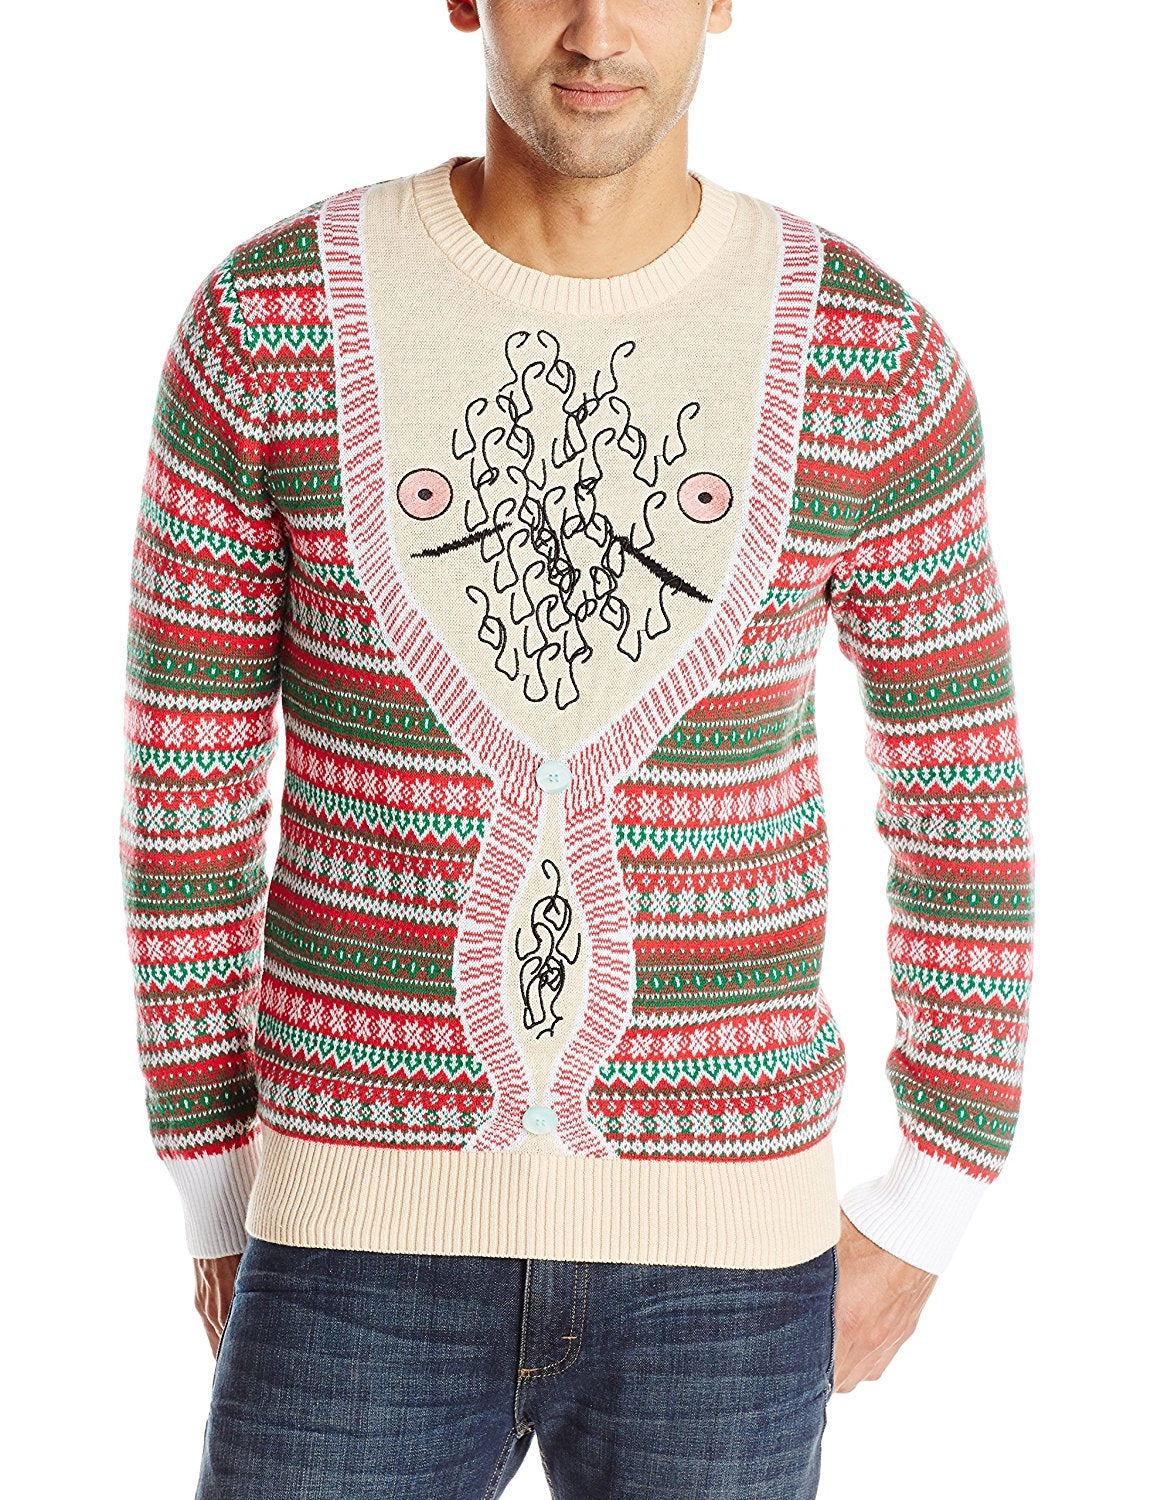 Alex Stevens Men's Hairy Chest Cardigan Ugly Christmas Sweater, Peach, Medium